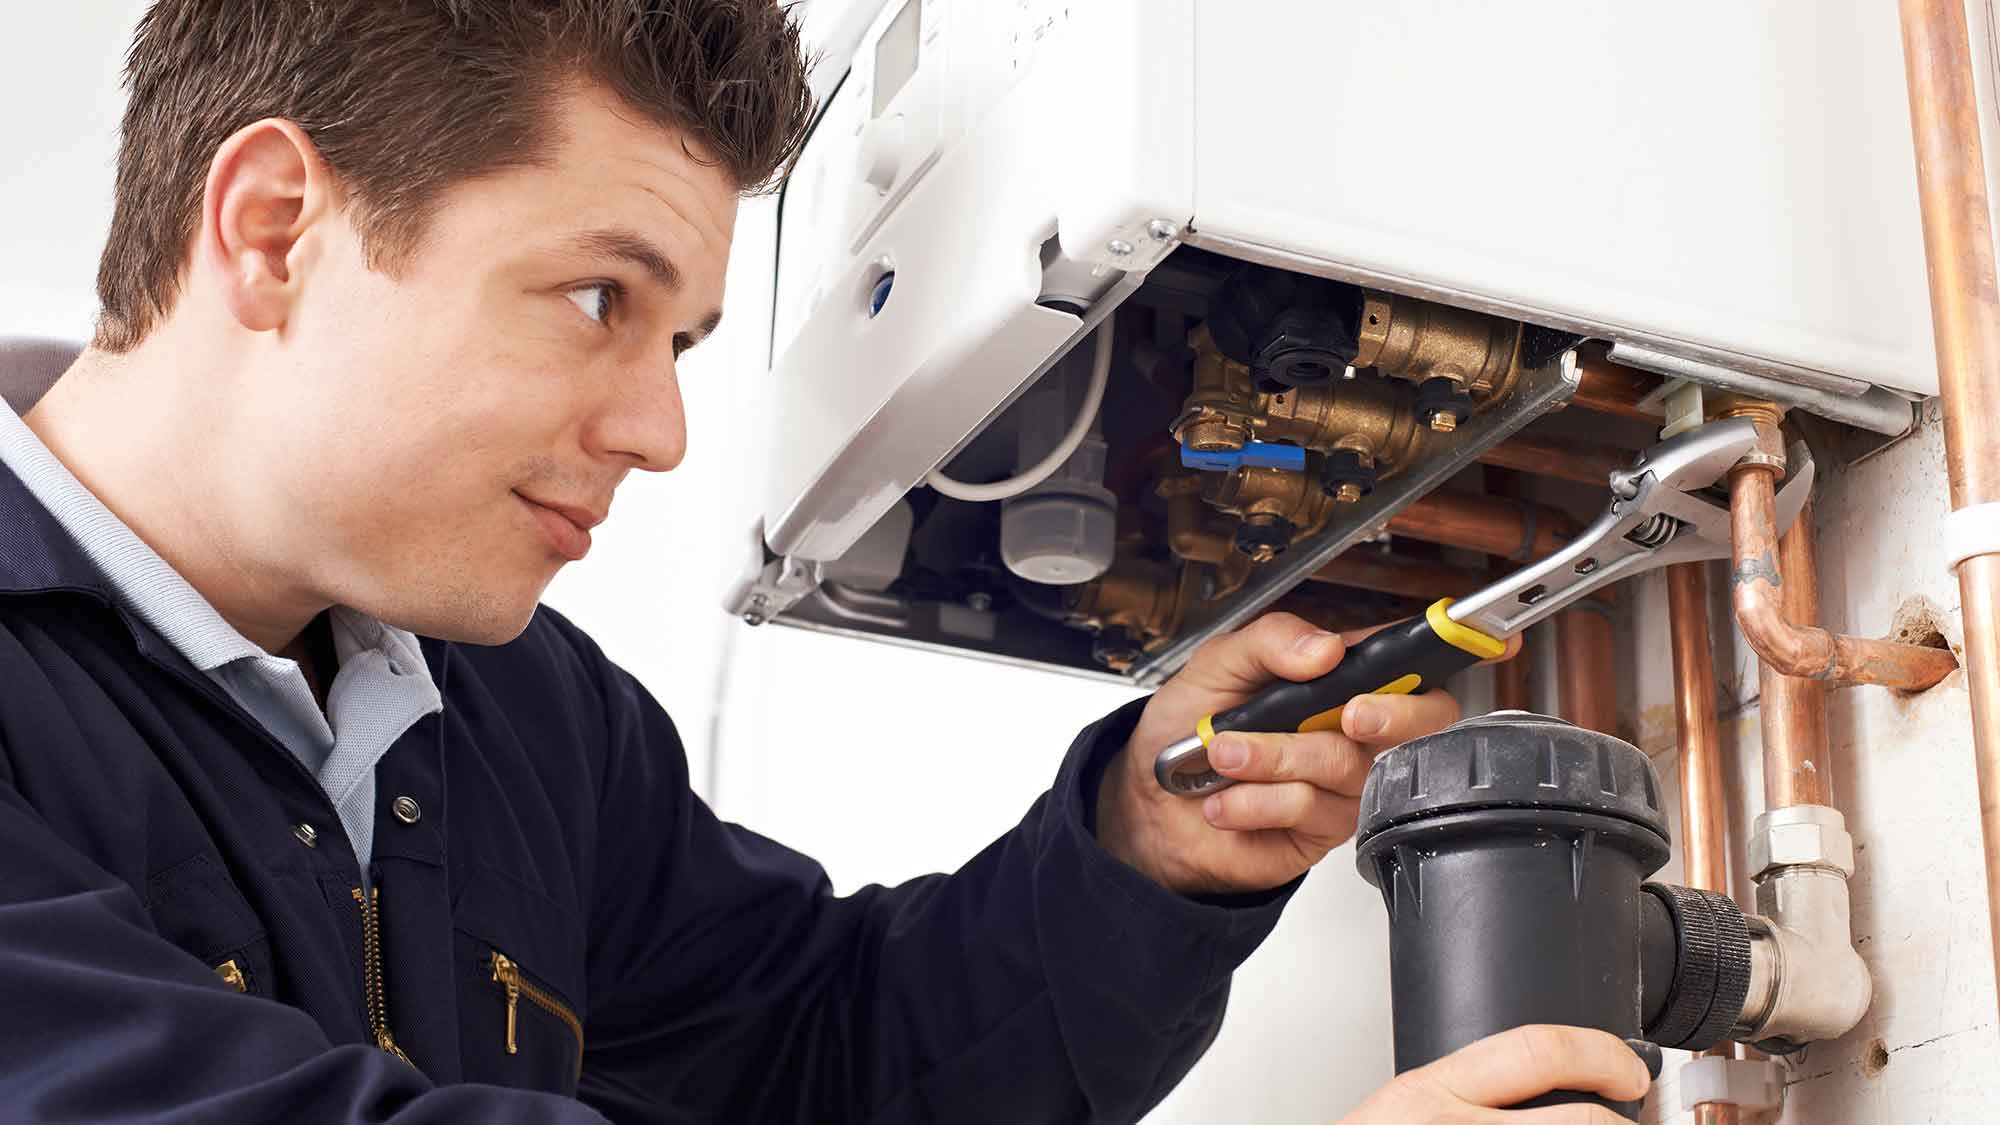 boiler servicing essex maintenance leigh on sea underneath